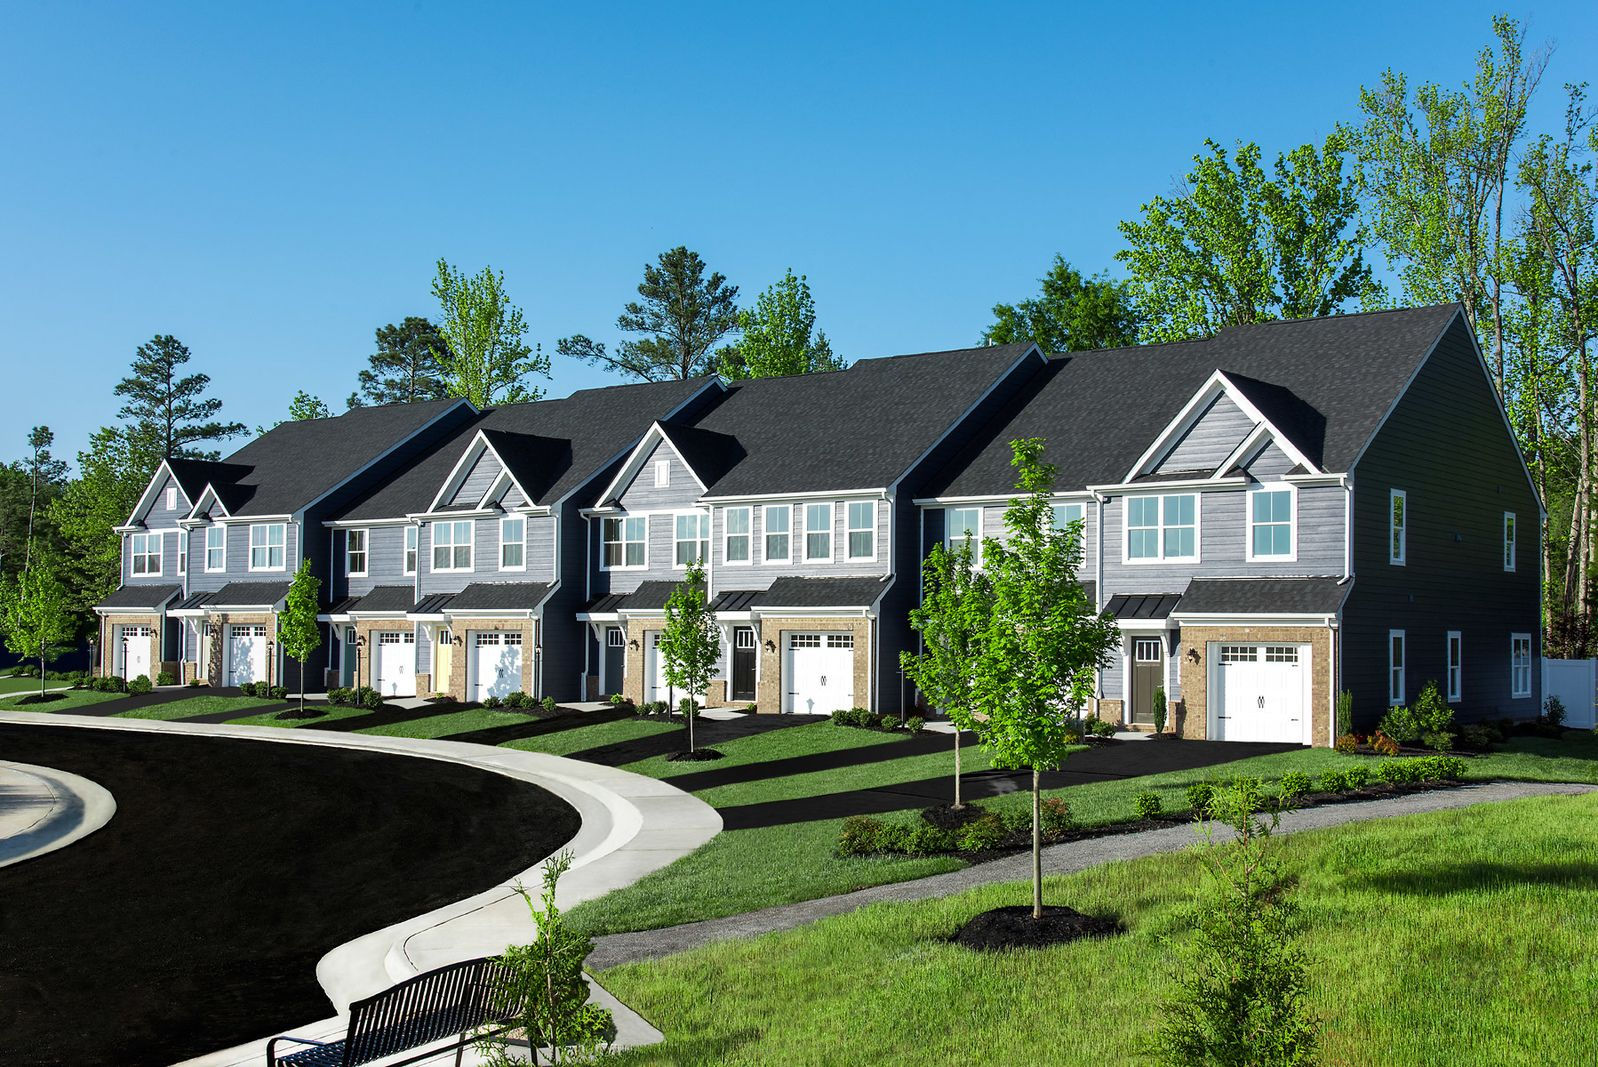 WINDING BROOK TOWNES – 2 & 3 STORY GARAGE TOWNHOMES JUST OFF I-95 WITH WALKABILITY TO DINING:LOW MONTHLY PAYMENTS AVAILABLE. Winding Brook Townes, Where location and convenience meet with that just-right price you have been looking for!